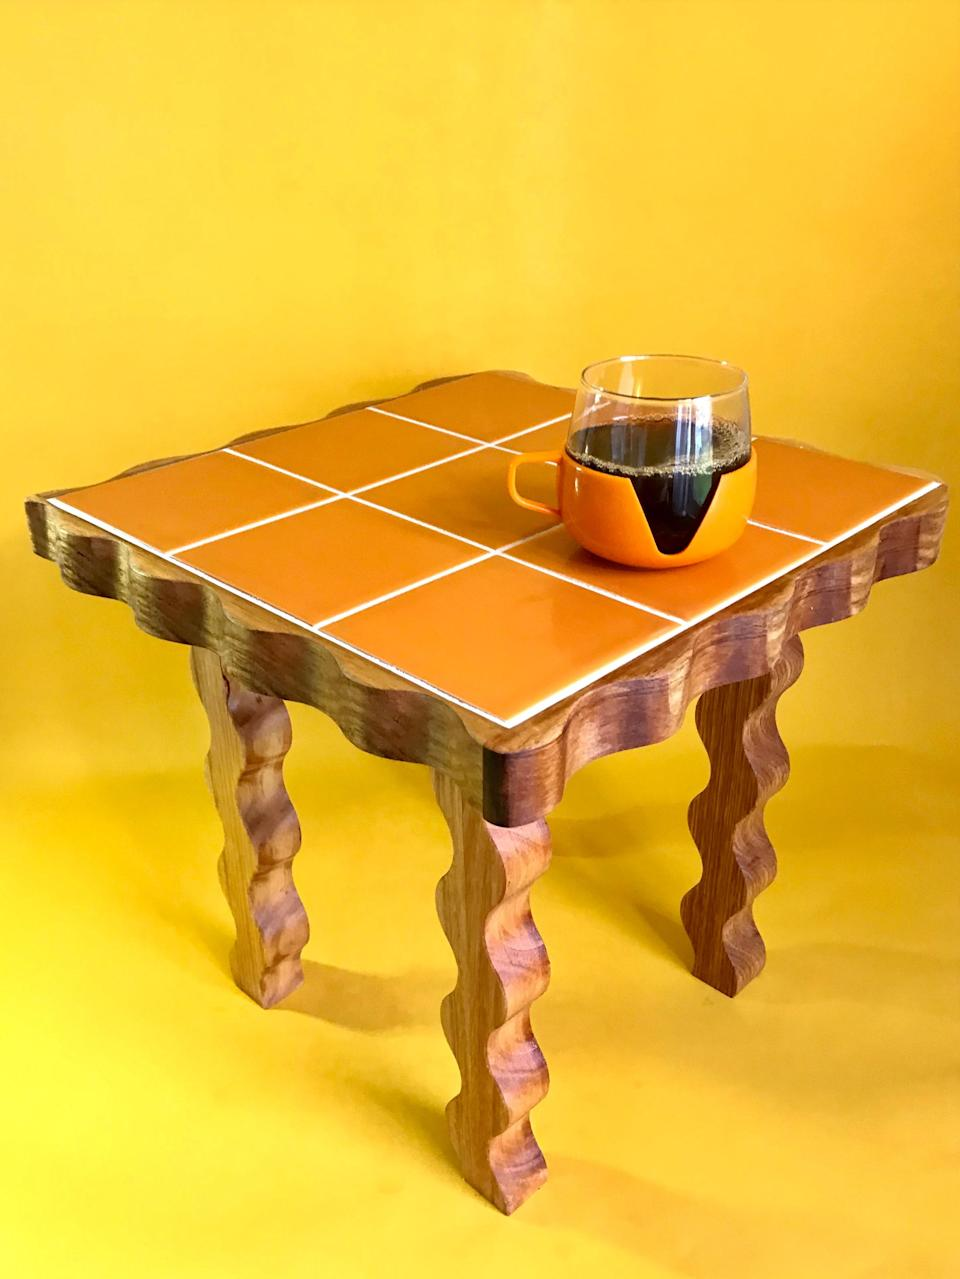 Secateur Me Baby's sold-out Crazy Legs side table.